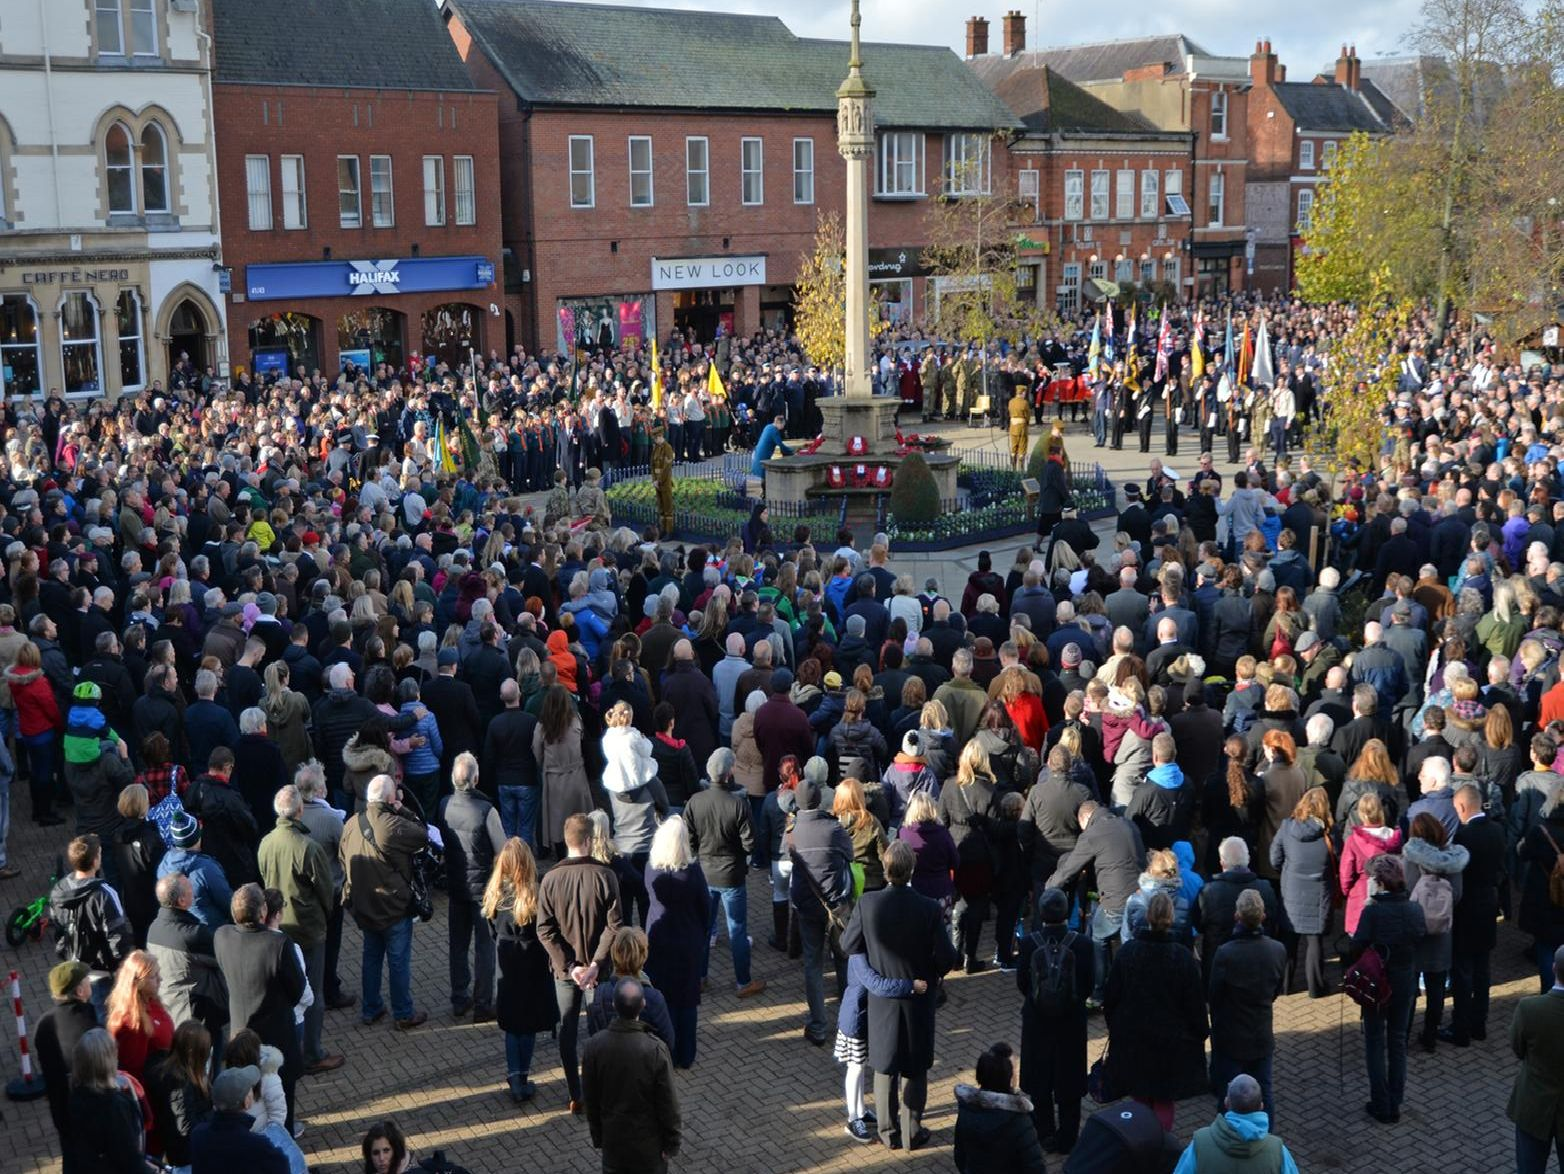 Hundreds gather on the Square to mark the 100th anniversary since the end of World War One. PICTURE: ANDREW CARPENTER